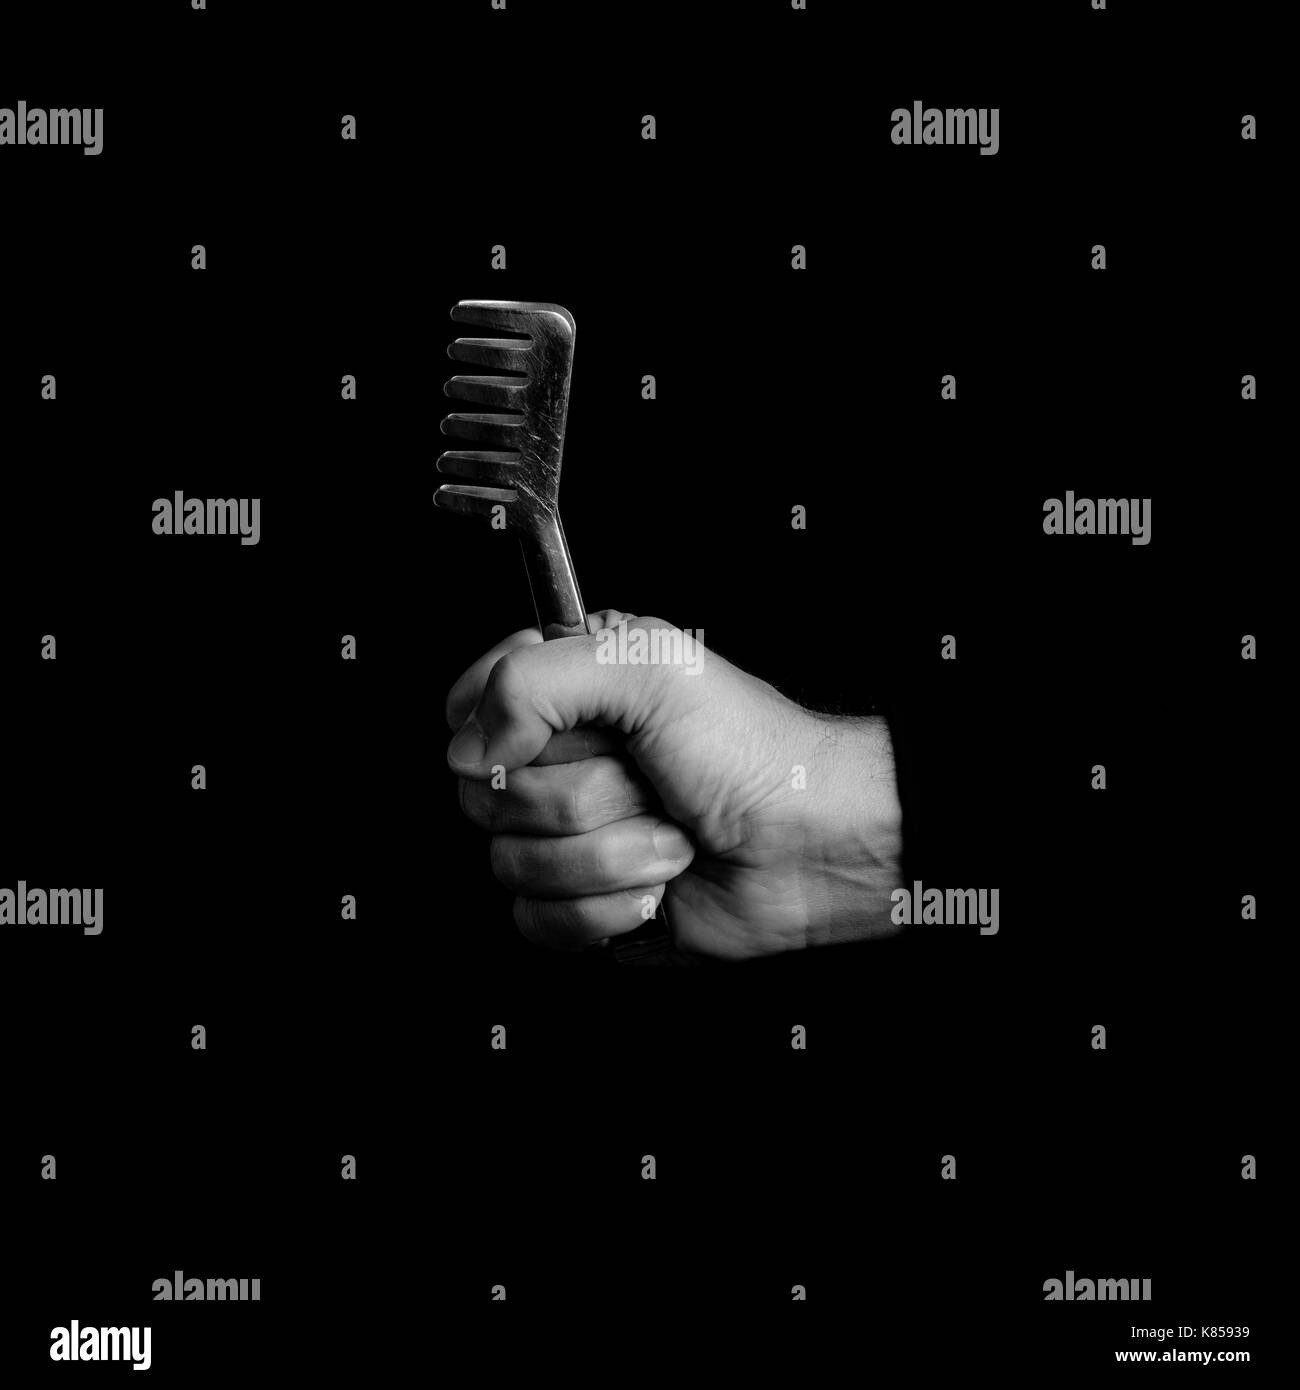 pasta pincer - kitchen tools in a man's hand - black and white photo - Stock Image